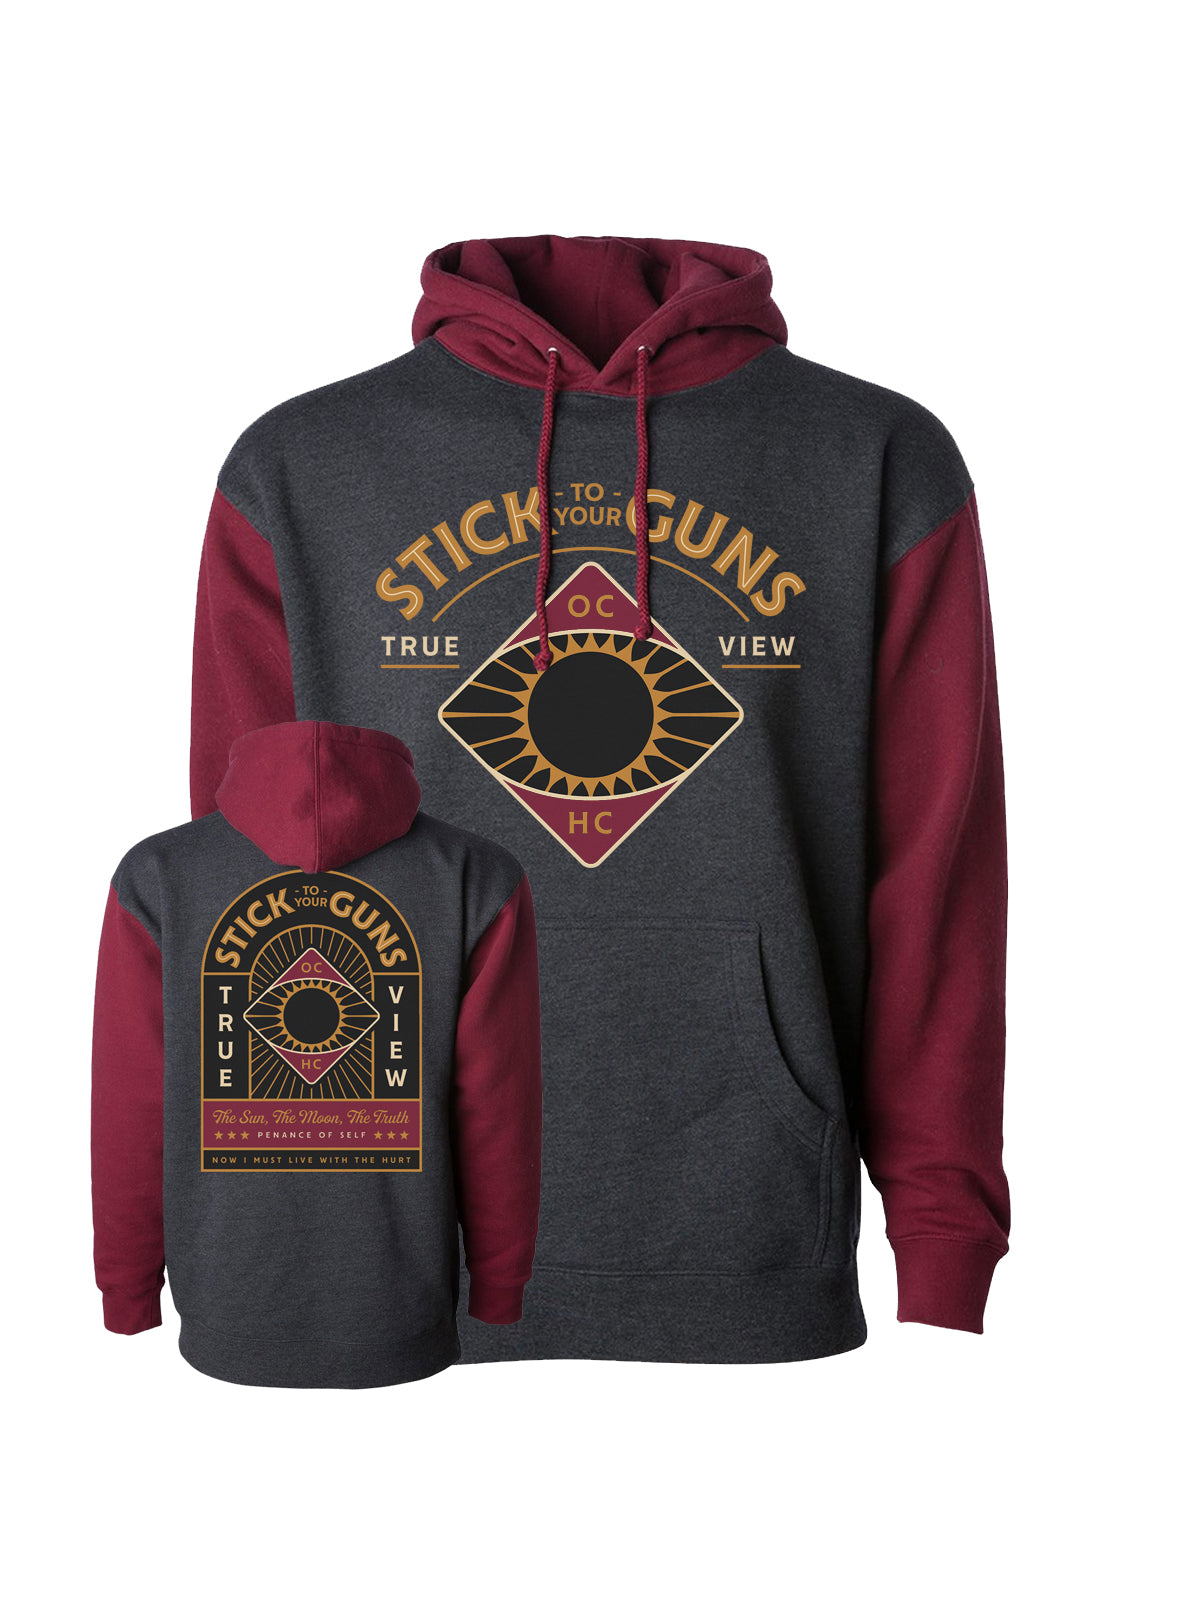 Stick to Your Guns - Penance of Self Hoodie - Merch Limited